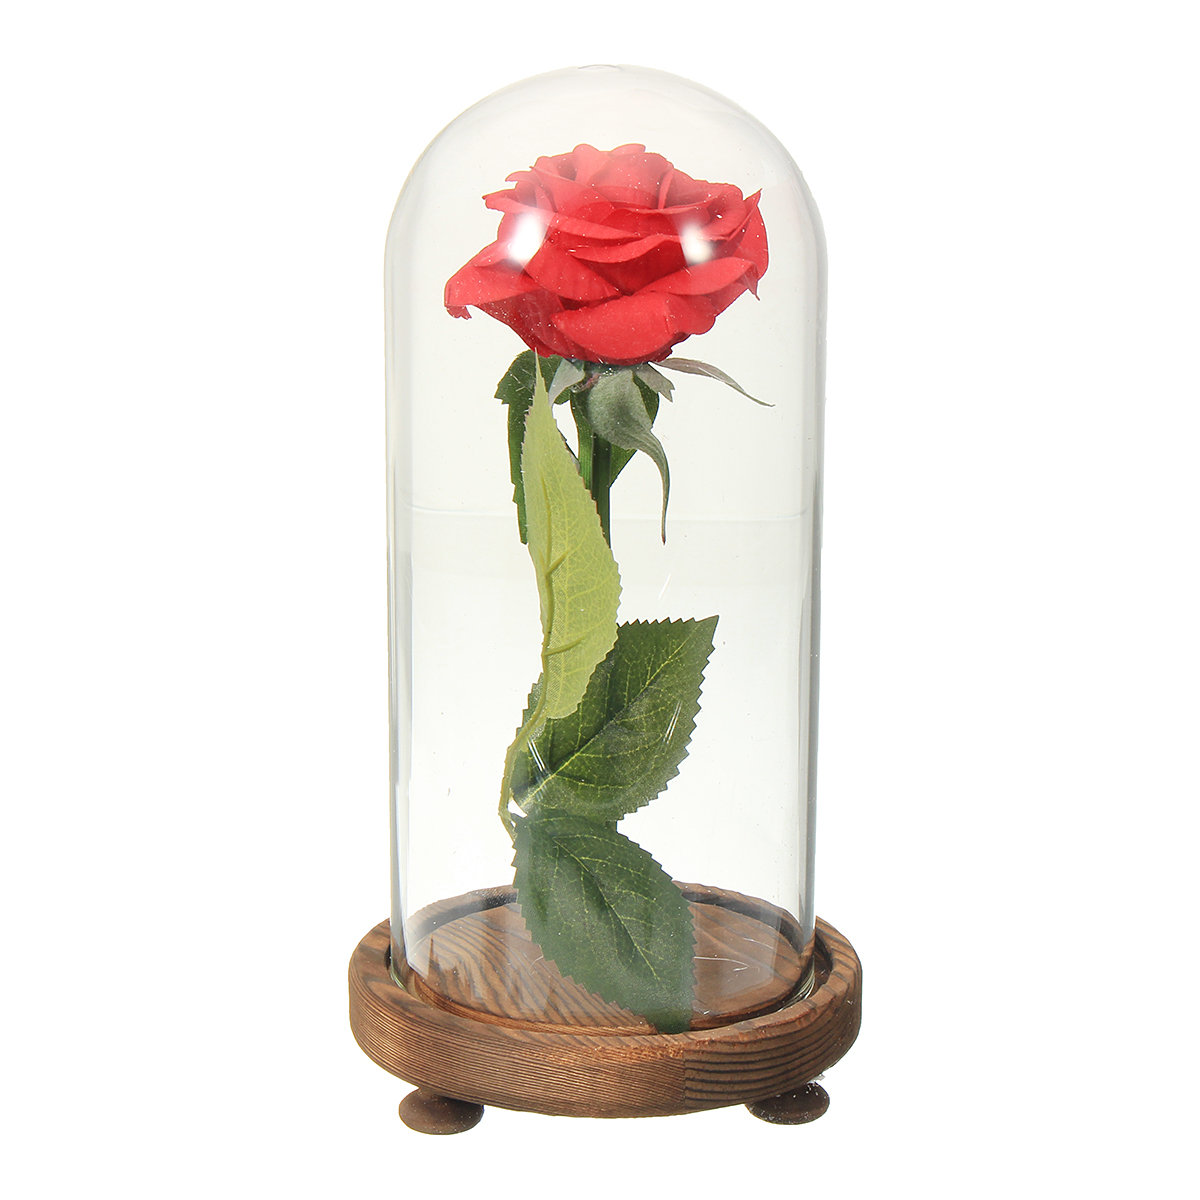 Beauty and the beast the little prince glass cover fresh preserved beauty and the beast the little prince glass cover fresh preserved flowers rose children toys izmirmasajfo